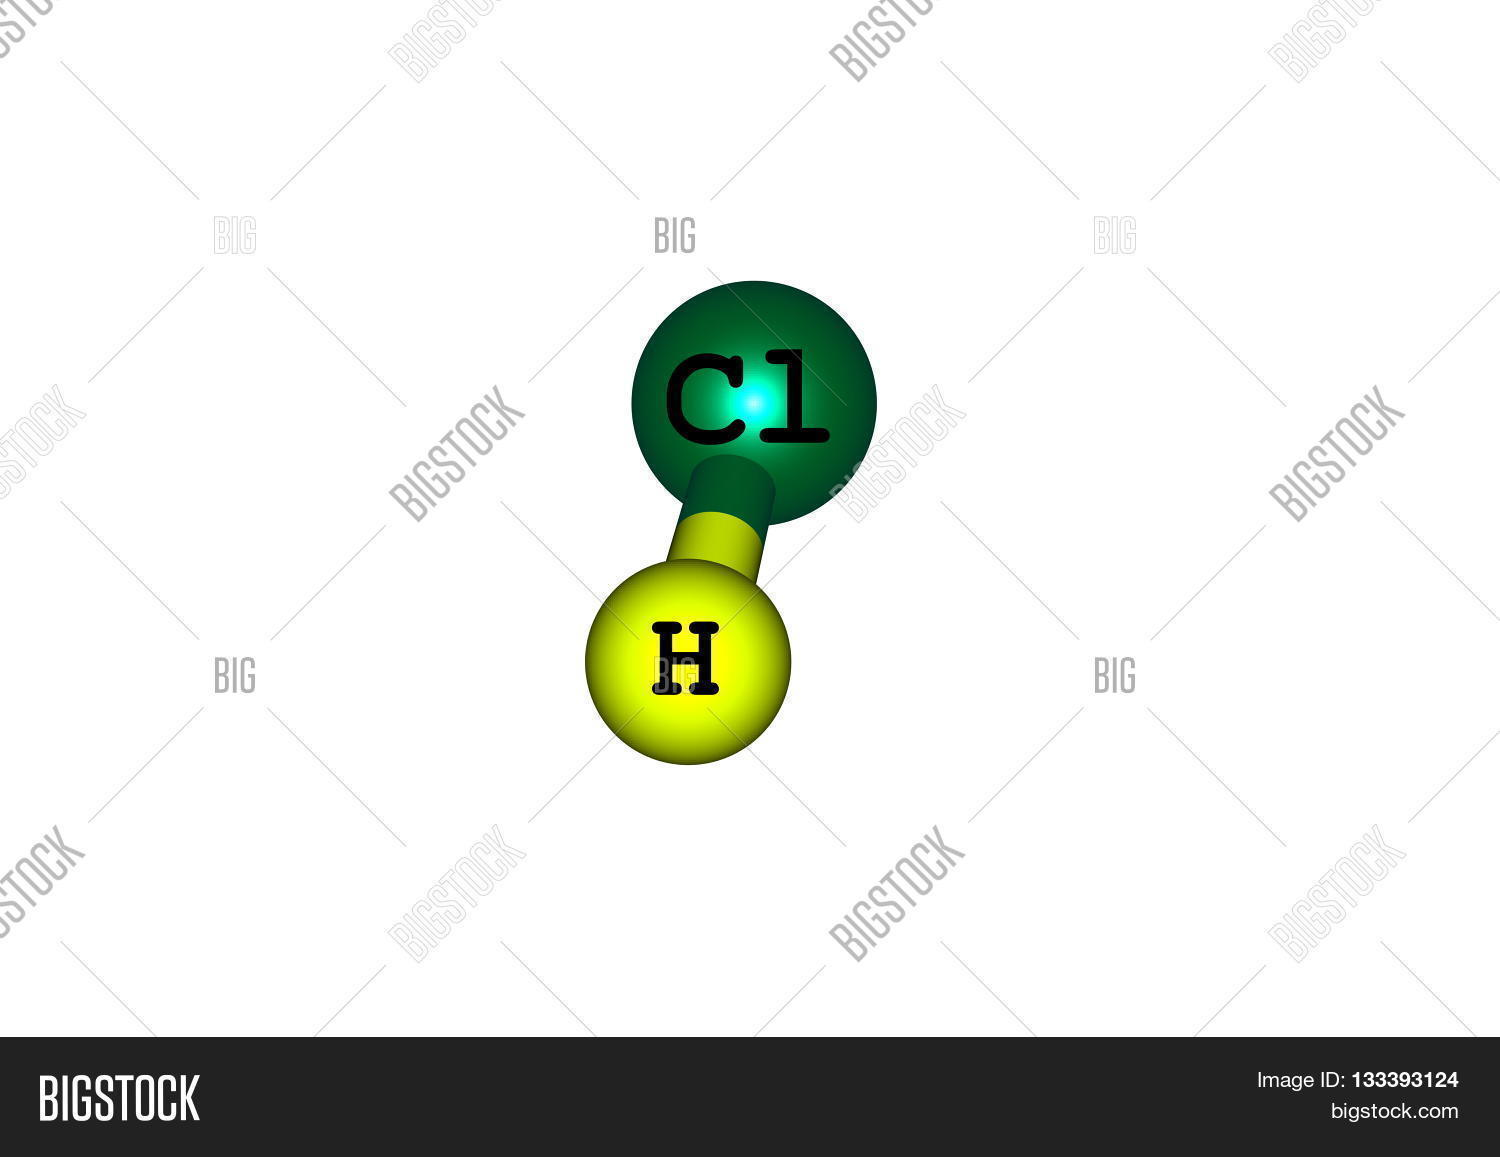 Compound Hydrogen Image Photo Free Trial Bigstock